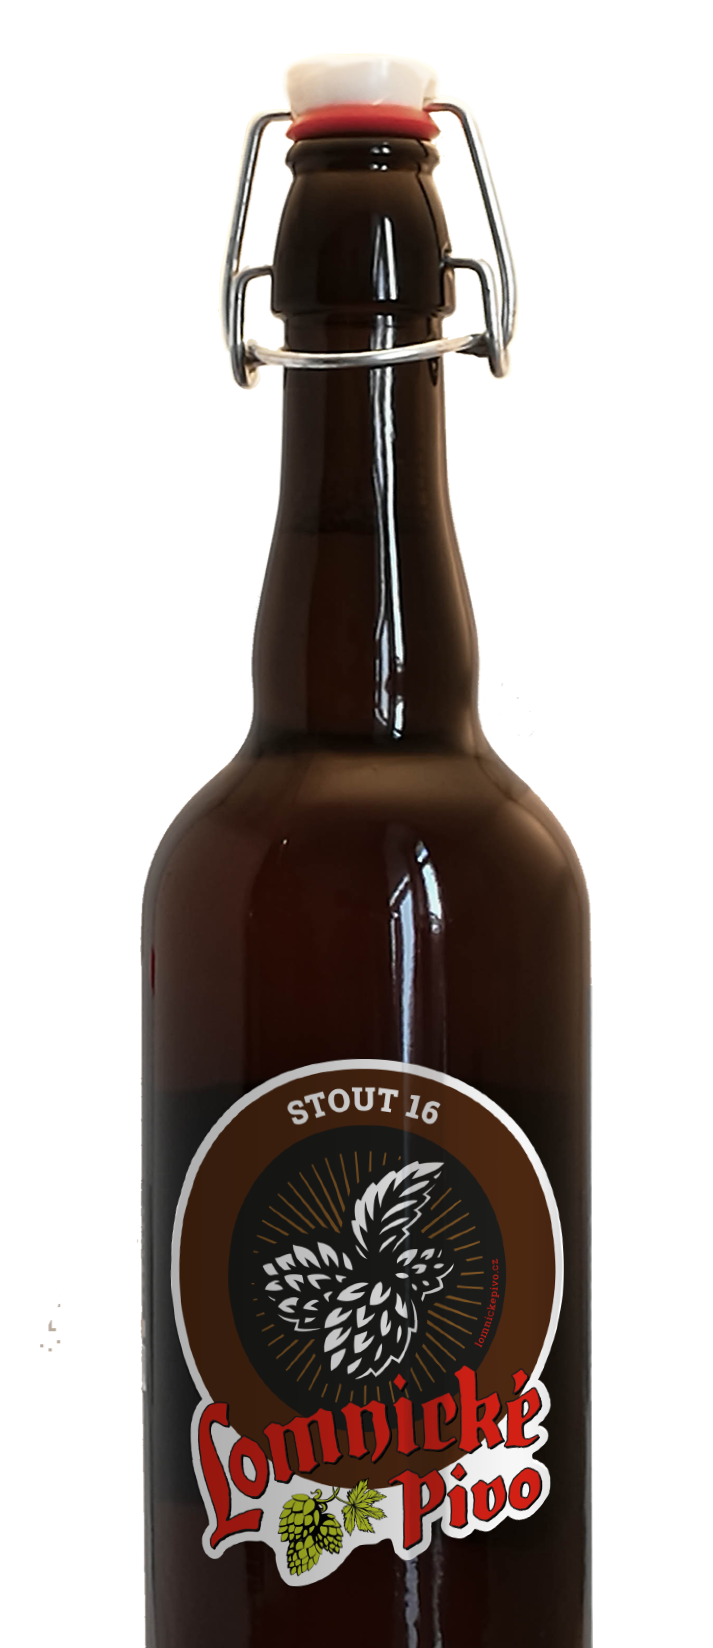 http://www.lomnickepivo.cz/wp-content/uploads/2019/04/lahev_poduct_foto_etiketa_PNG_stout.png